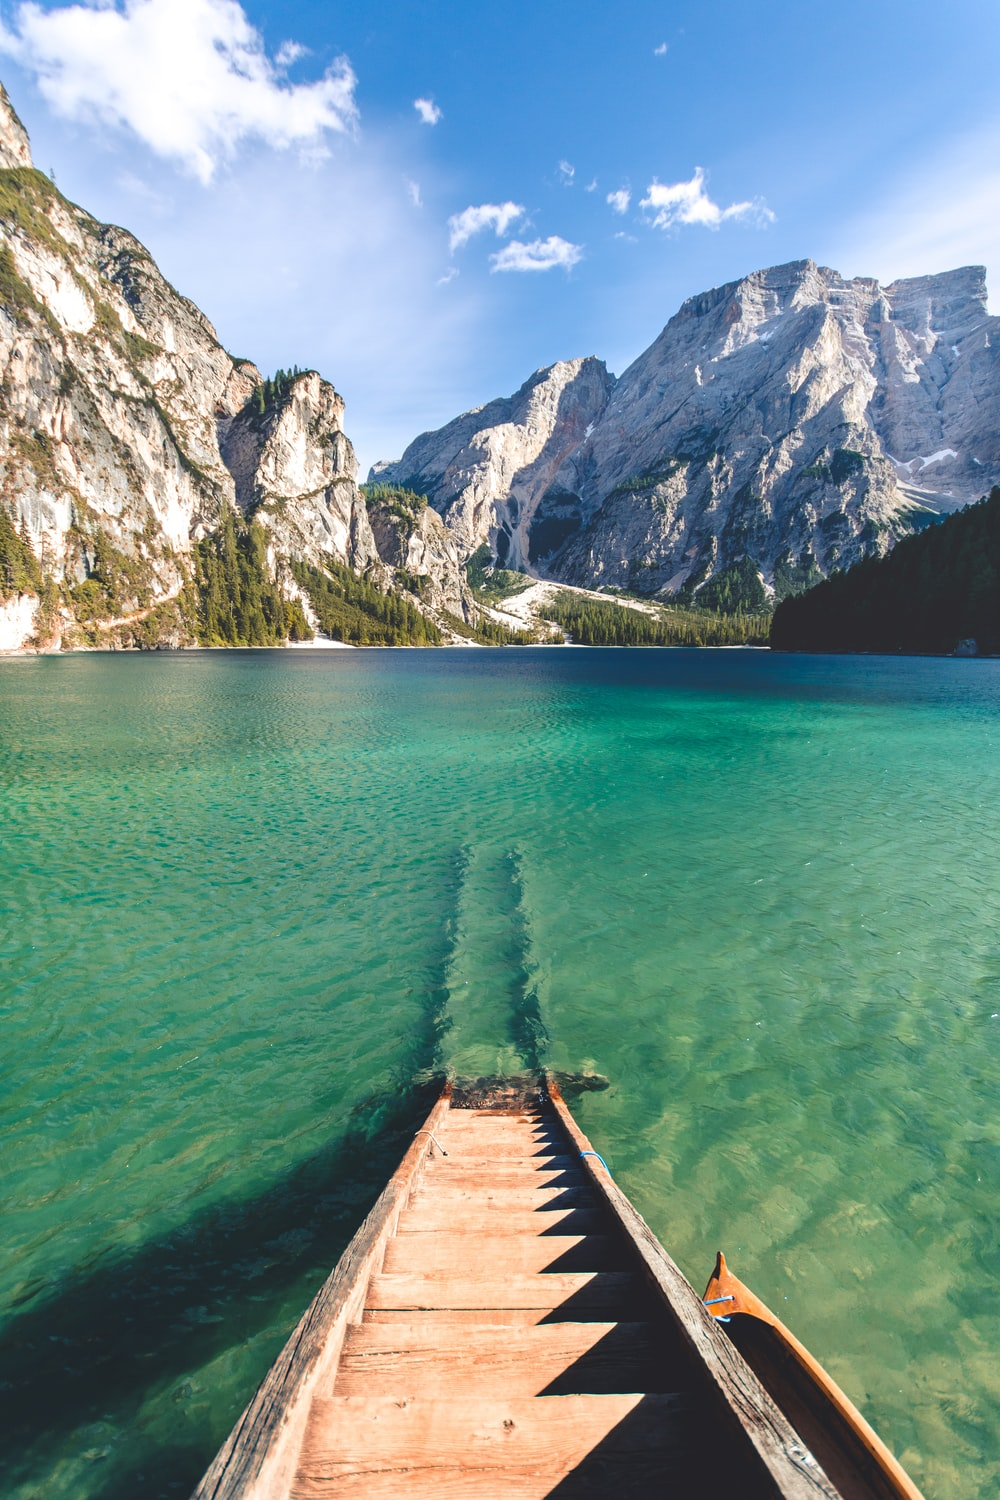 brown wooden wooden ladder submersed in body of water with rocky mountain ahead under white and blue sky